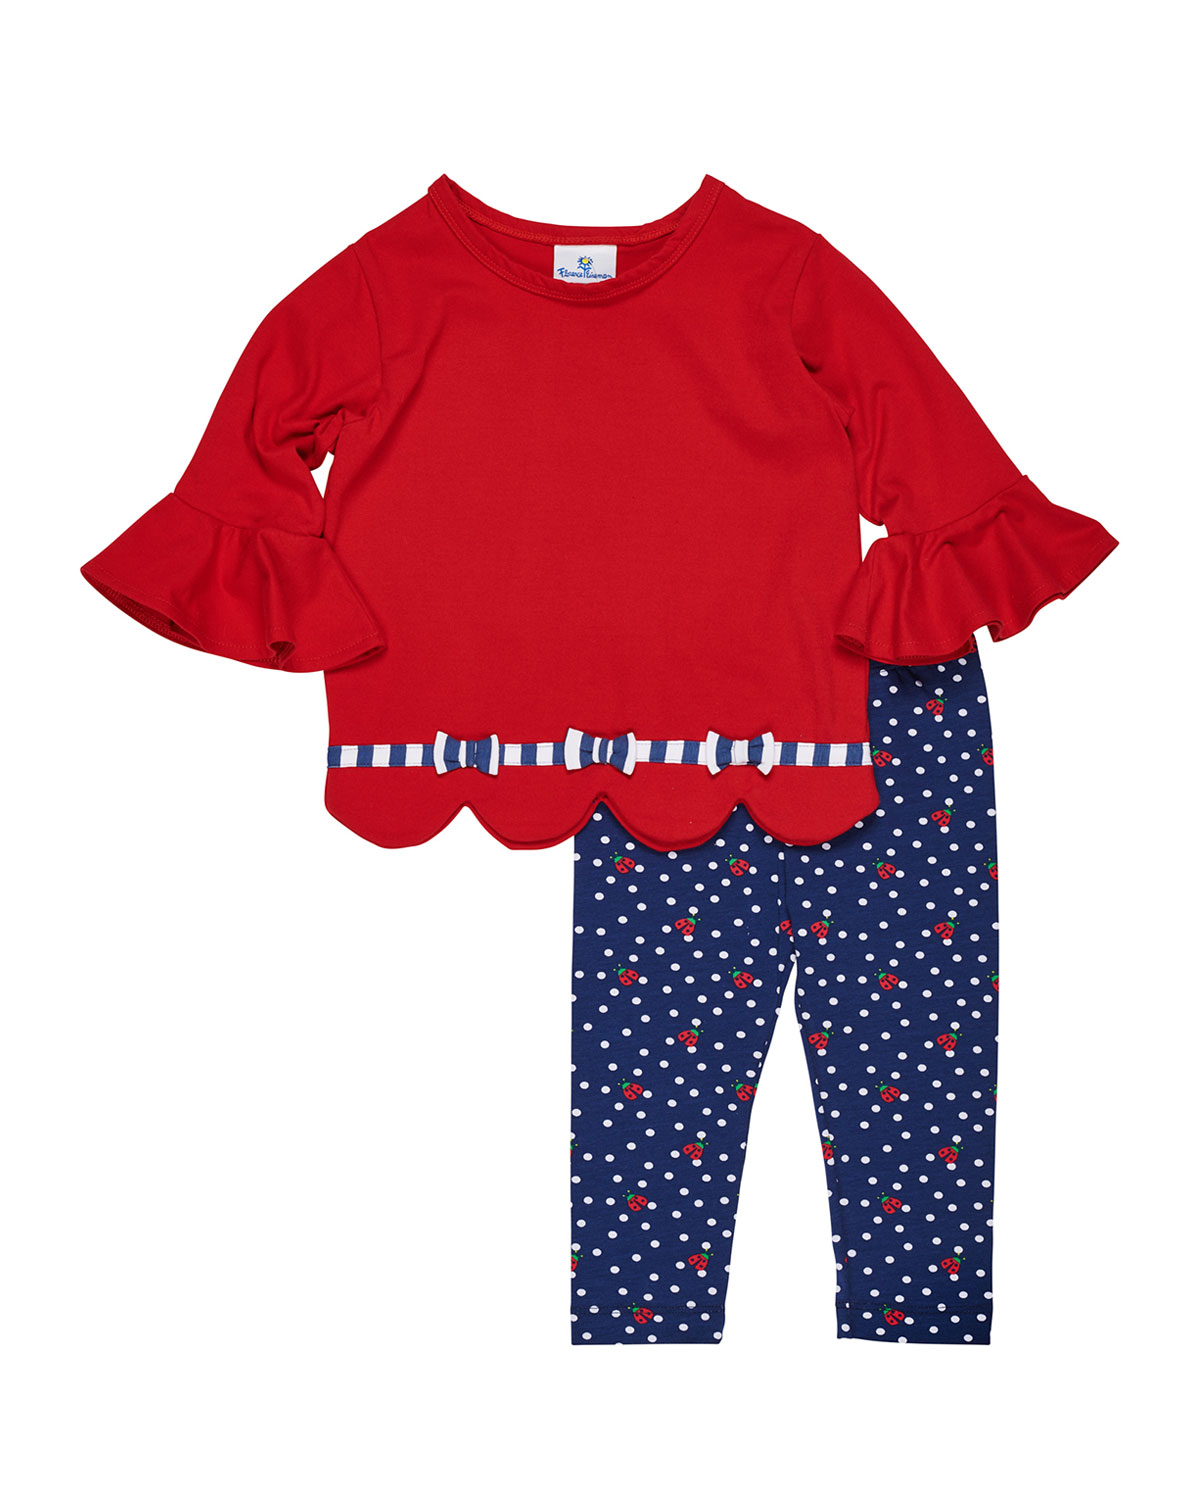 Solid Scallop-Hem Top w/ Ladybug-Print Leggings, Size 2-6X